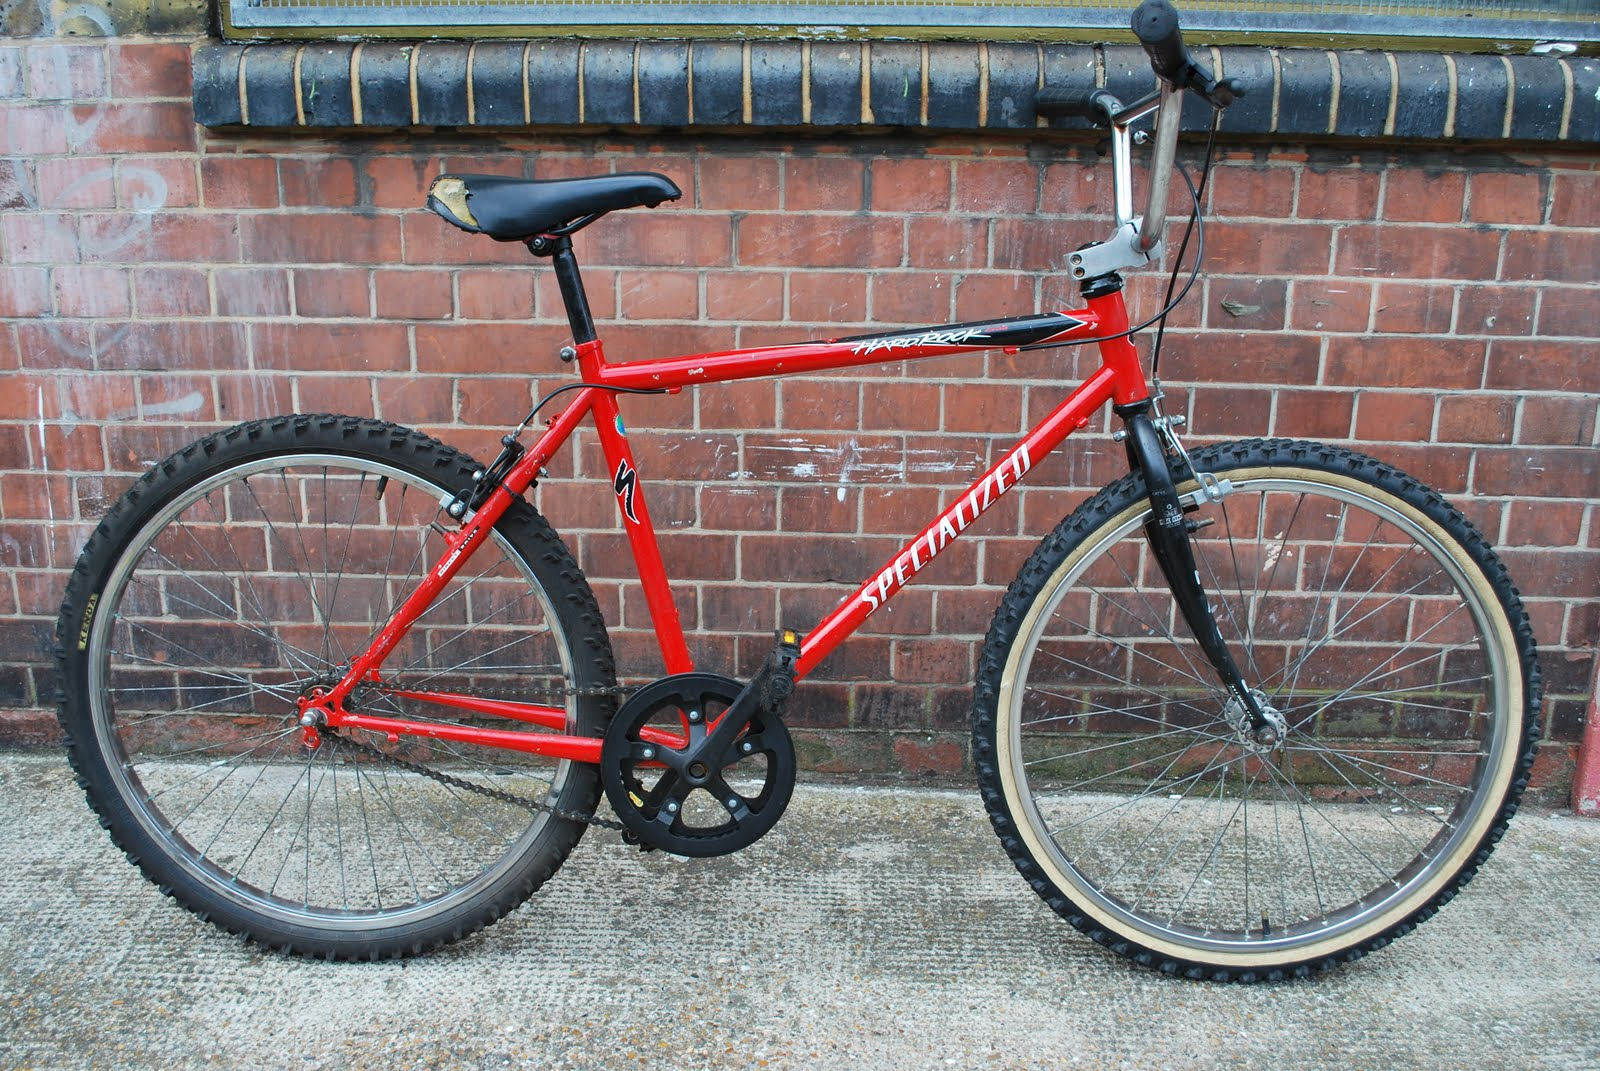 Squeaky Chains Ebay Sale Specialized Hardrock Mountain Bike Sold